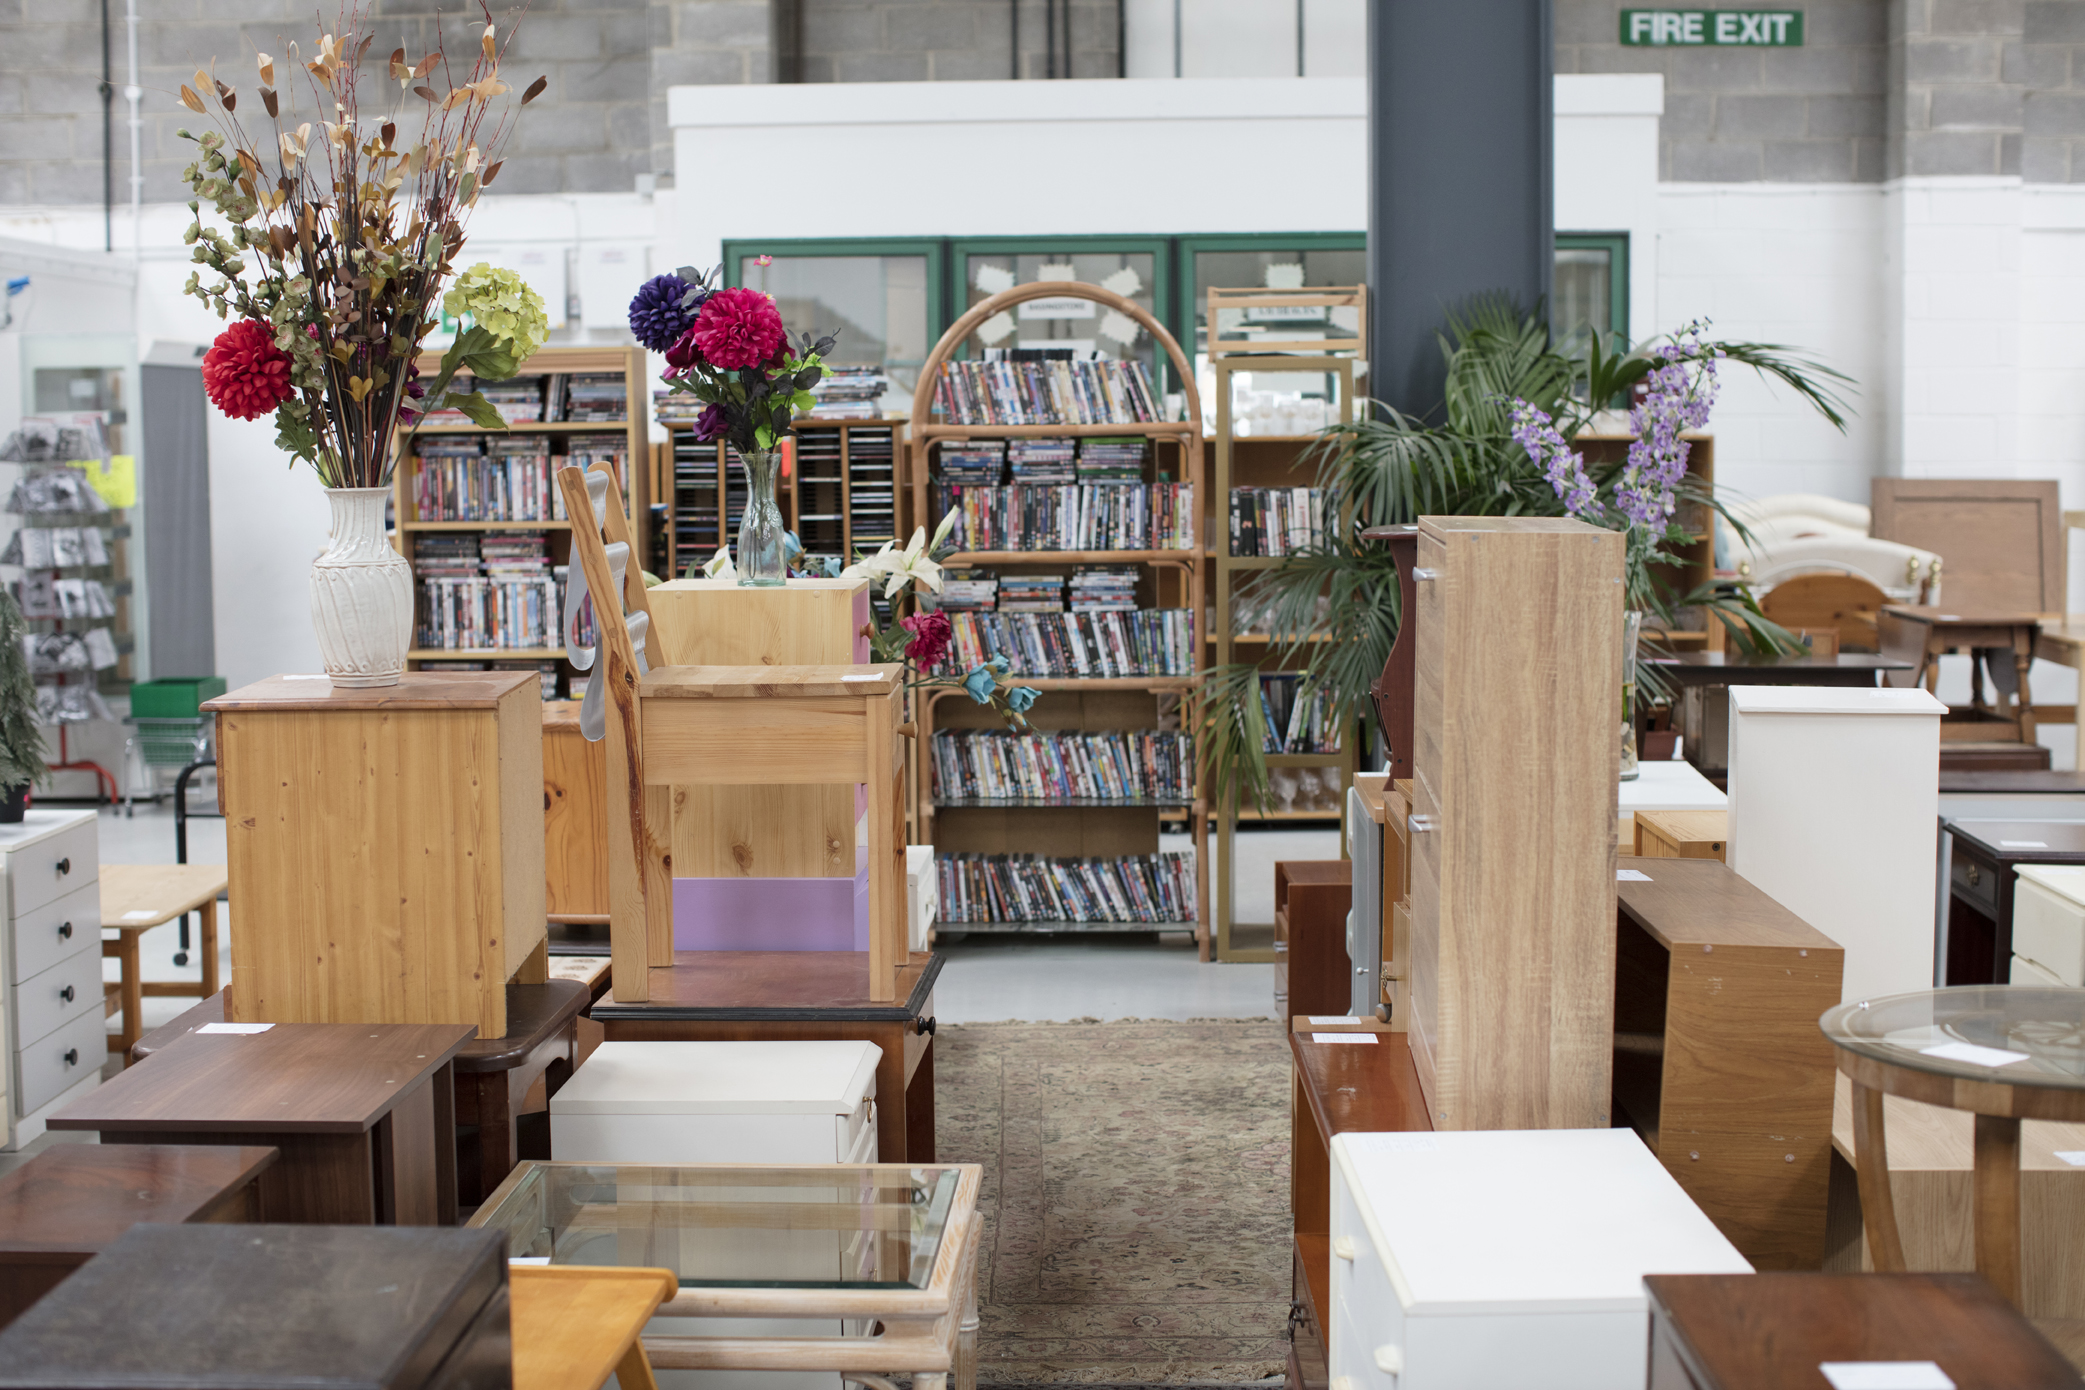 A Reuse Network member's furniture warehouse